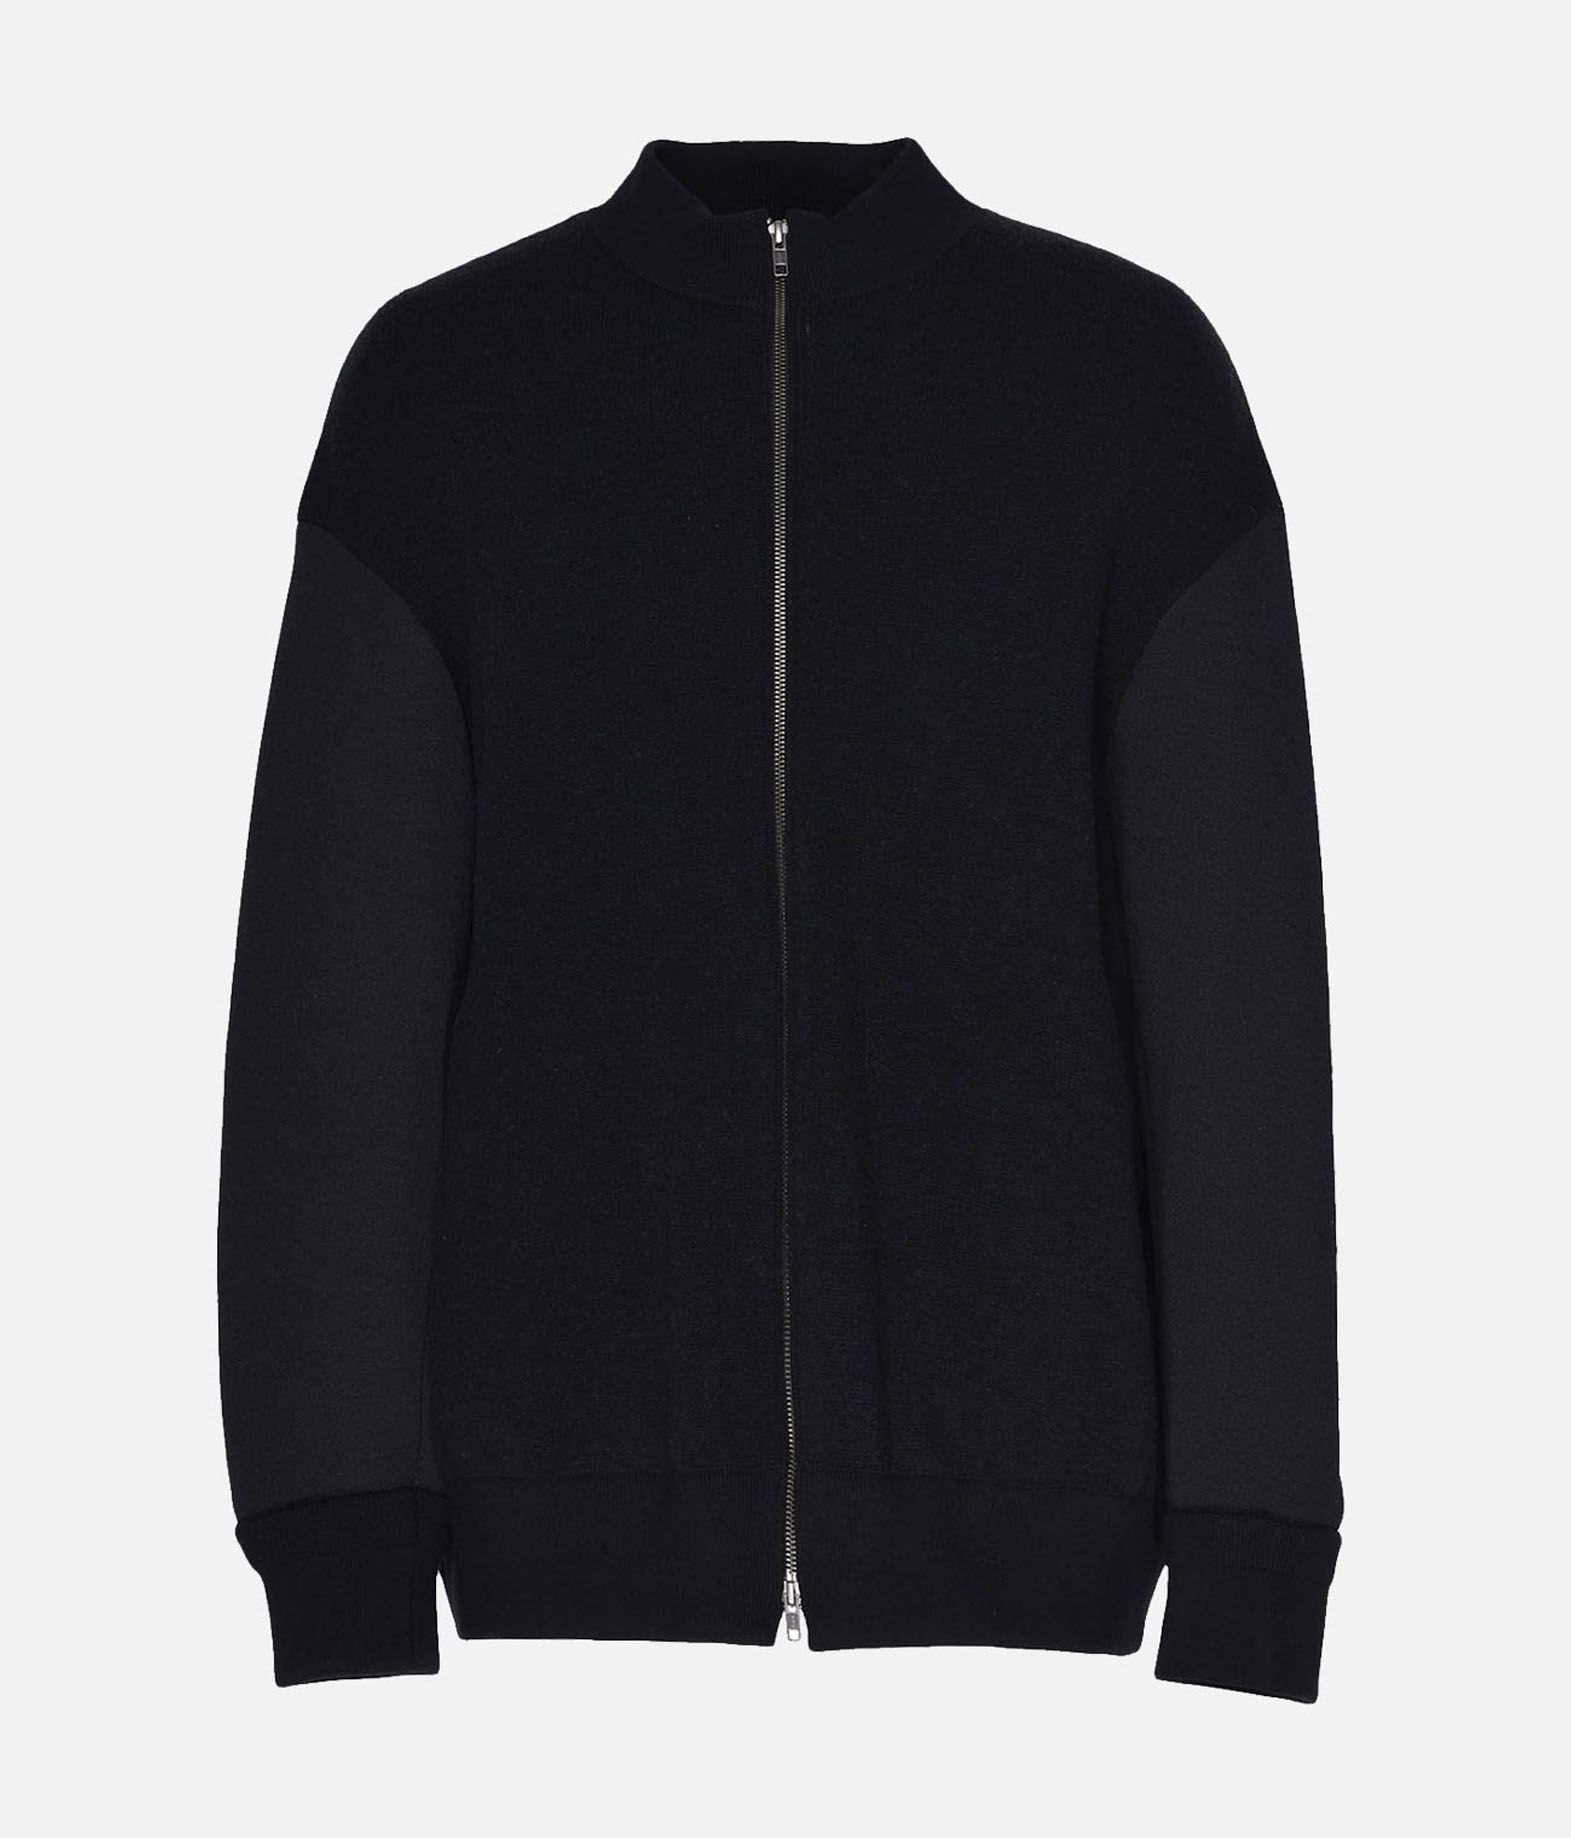 Y-3 Y-3 Knitted Stacked Logo Blouson Blazer Man f